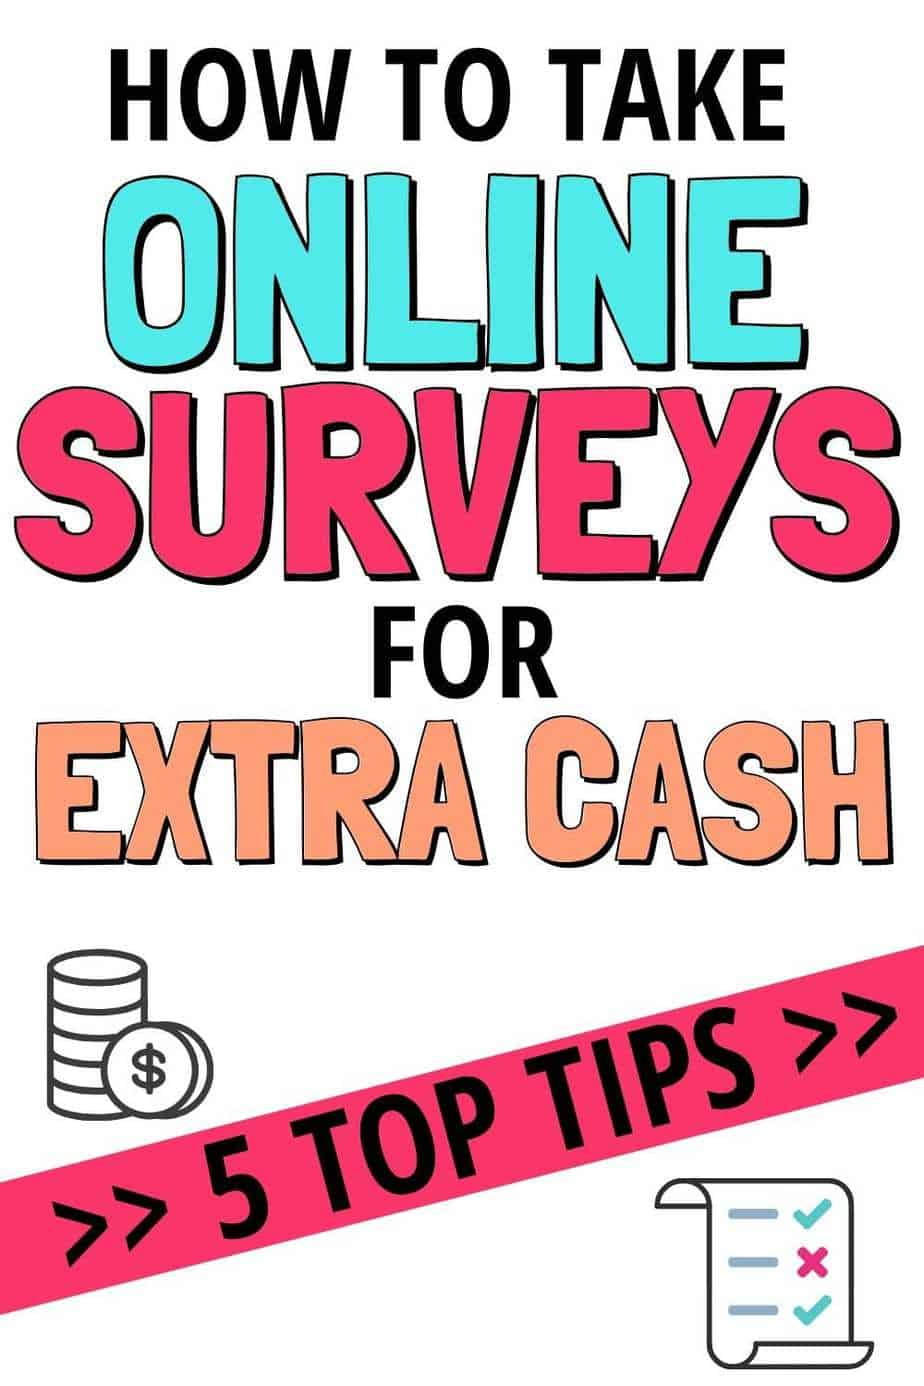 How to take online surveys for extra cash